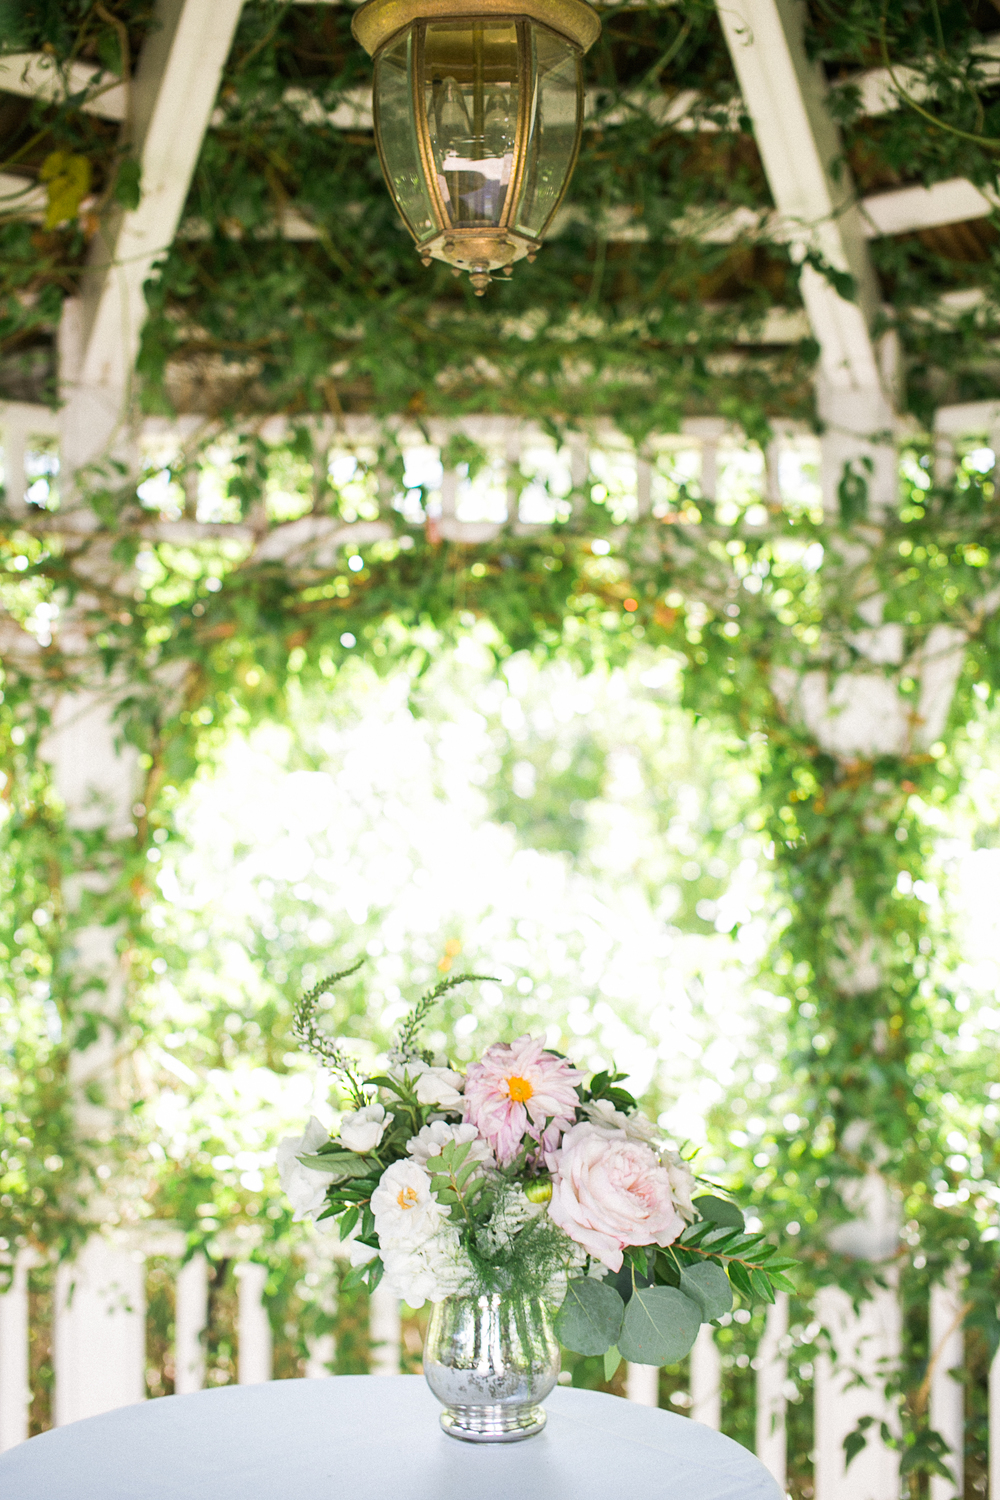 Blush & ivory, garden romantic ceremony decor by San Diego wedding florist, Compass Floral.